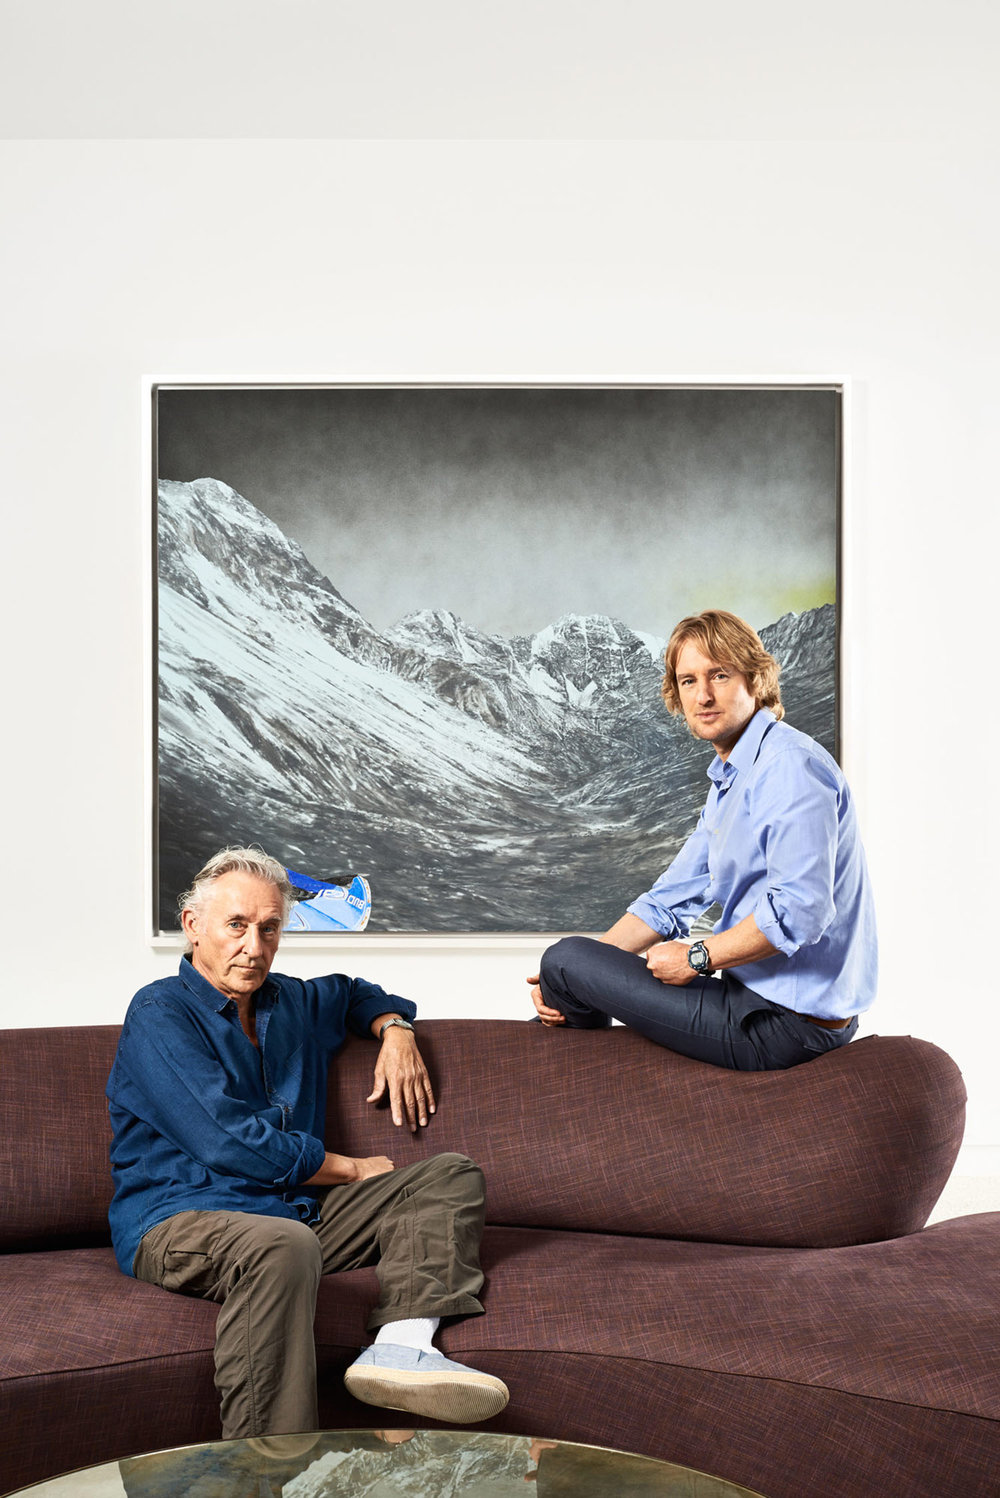 Ed Ruscha, Artist & Owen Wilson, Actor, Los Angles, California, 2013